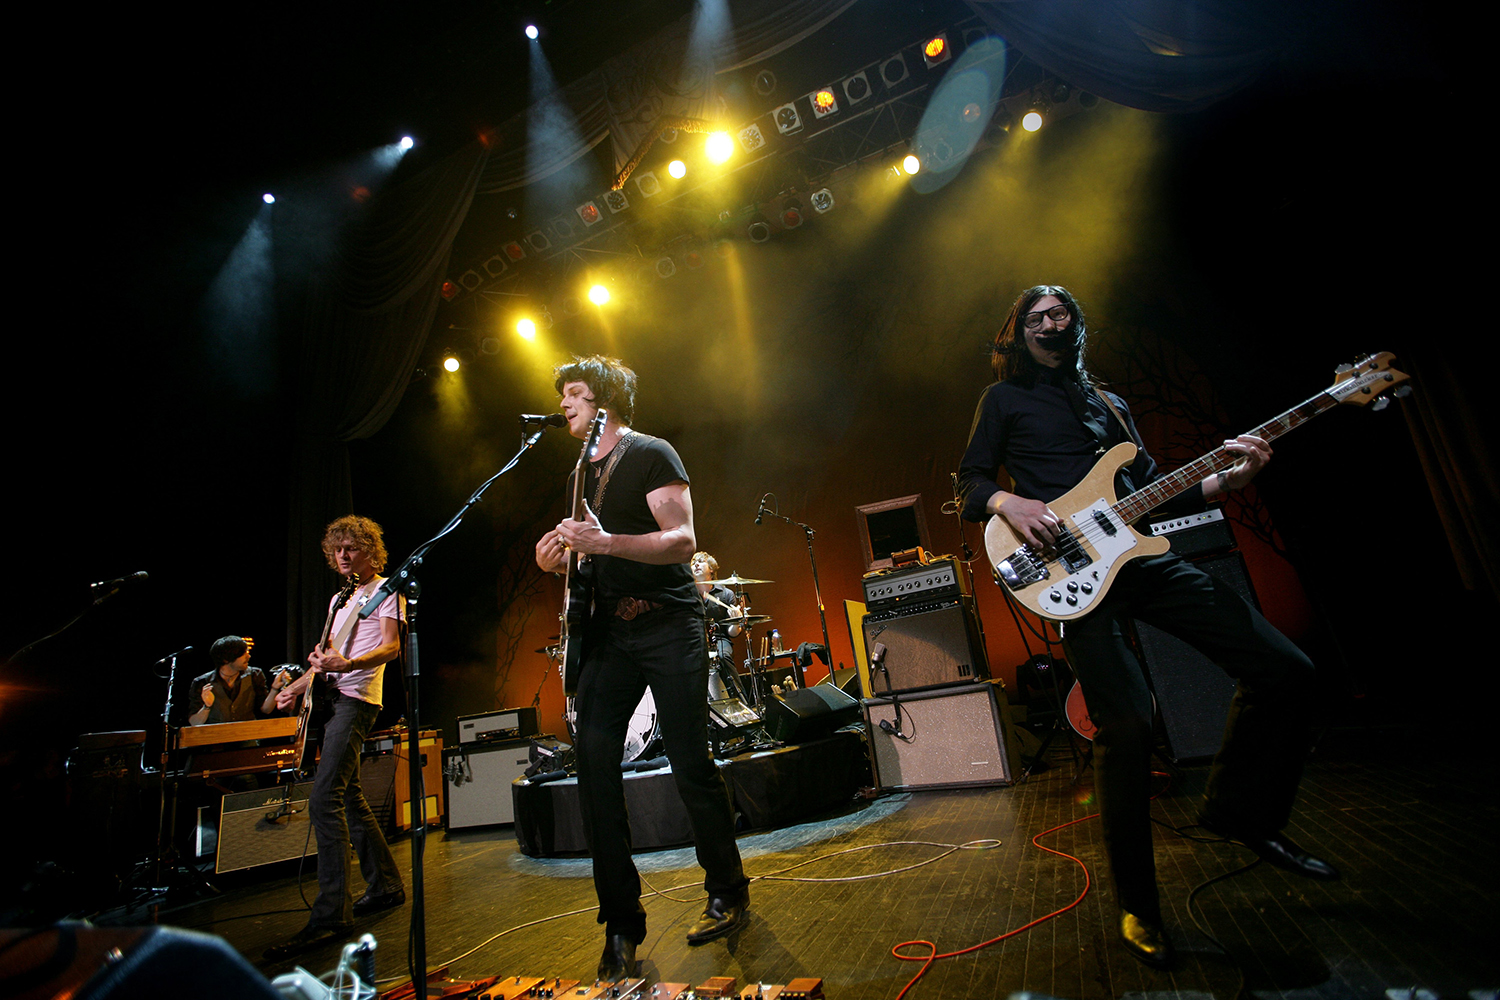 The Raconteurs, Brendan Benson (left), Jack White (center), Jack Lawrence on bass and Patrick Keeler on drums, perform at the Fillmore in Detroit, Michigan, Saturday, June 7, 2008. (Romain Blanquart/Detroit Free Press/MCT)